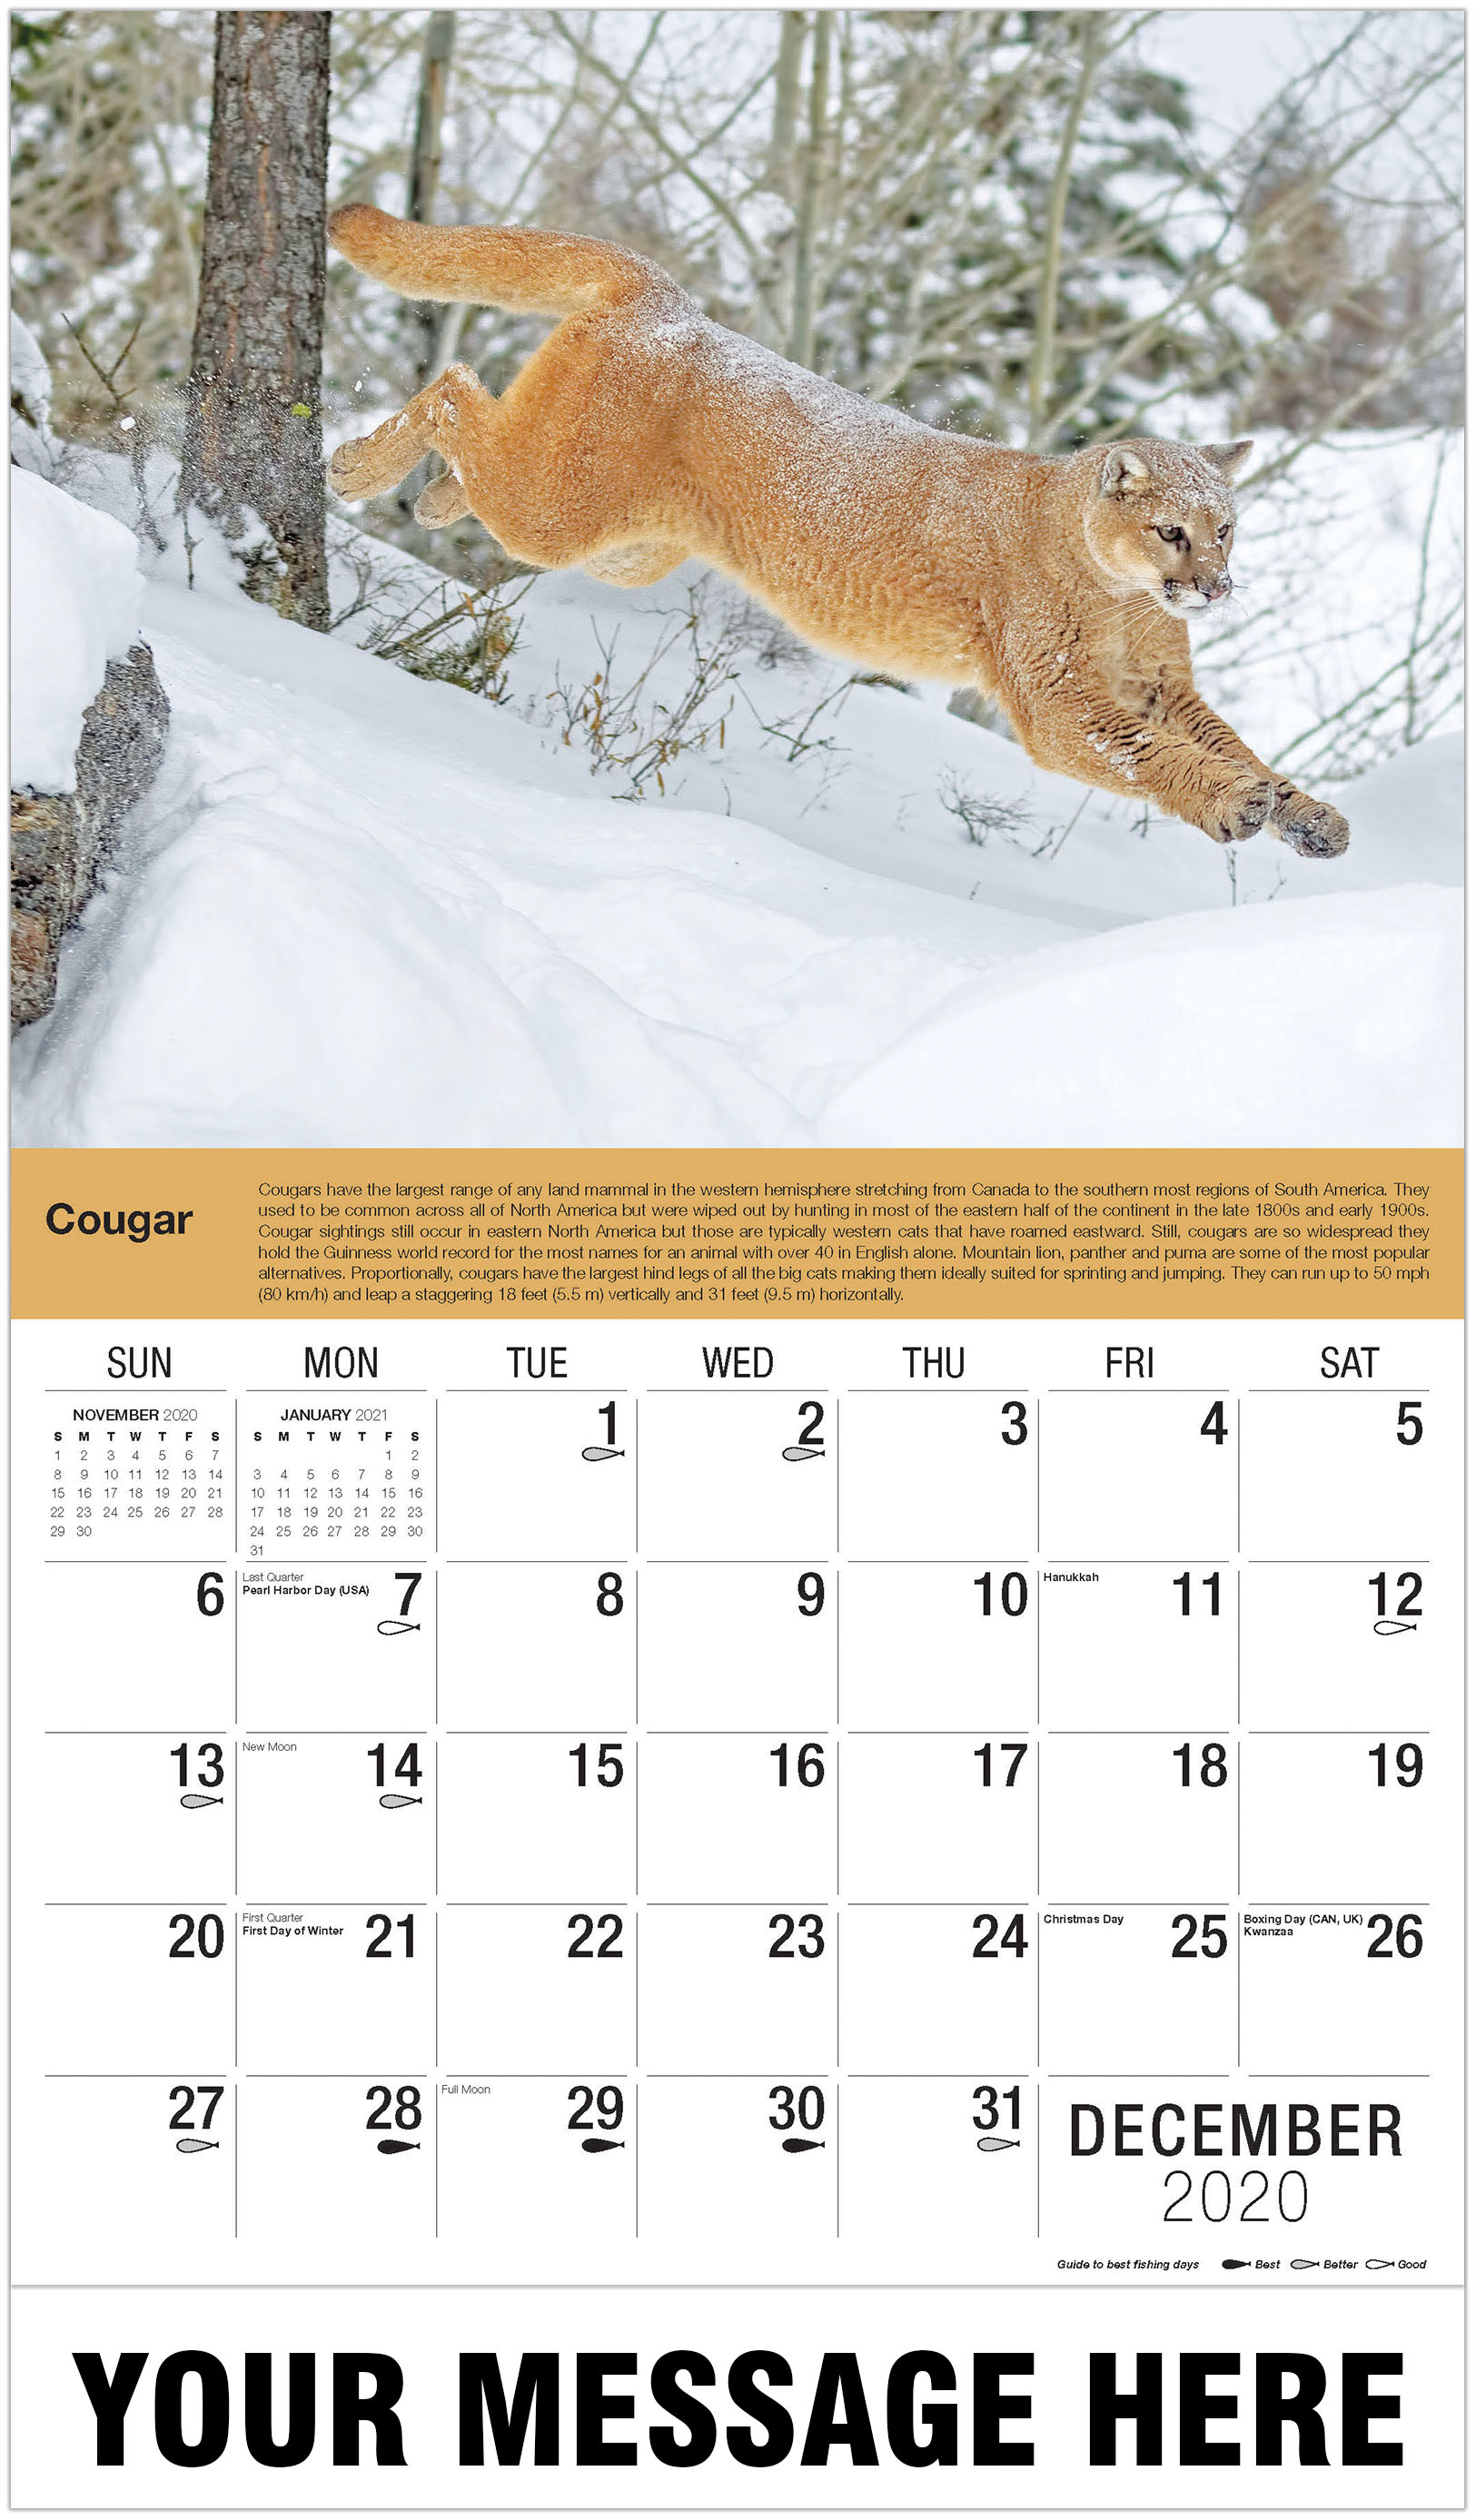 Mountain Lion in Winter - December 2020 - North American Wildlife 2021 Promotional Calendar